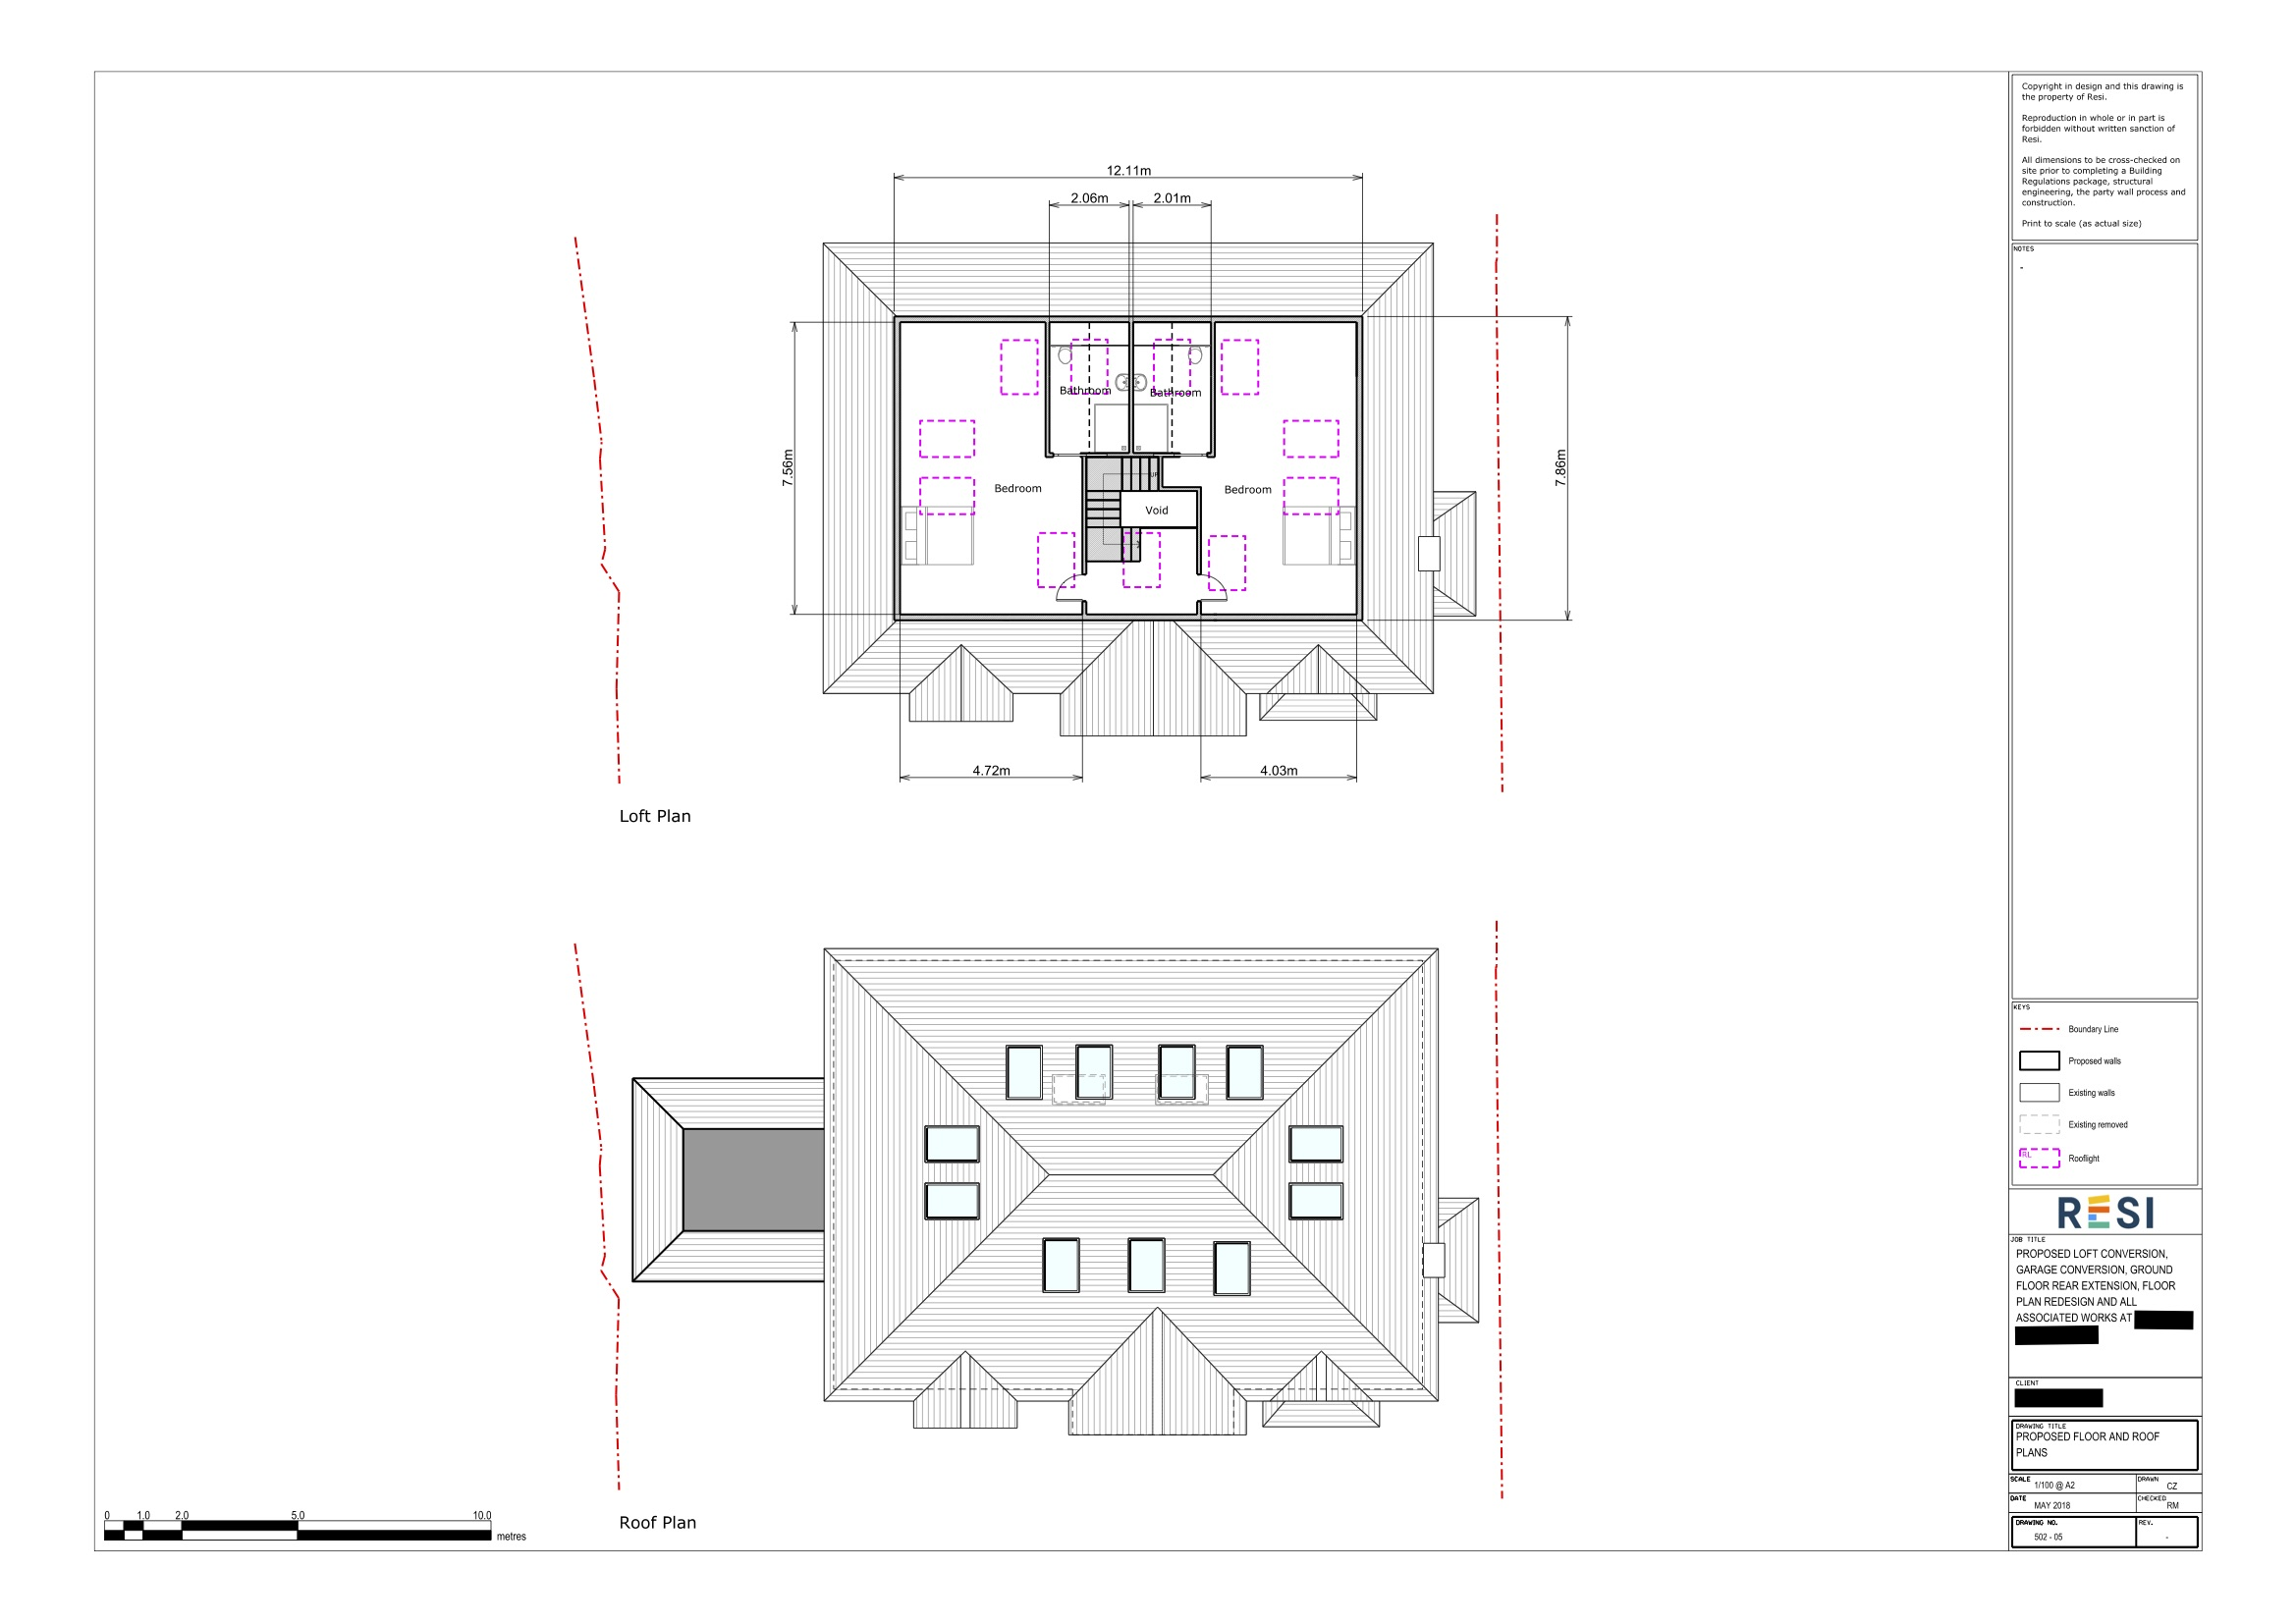 Architectural drawing package 2   loft floor plans